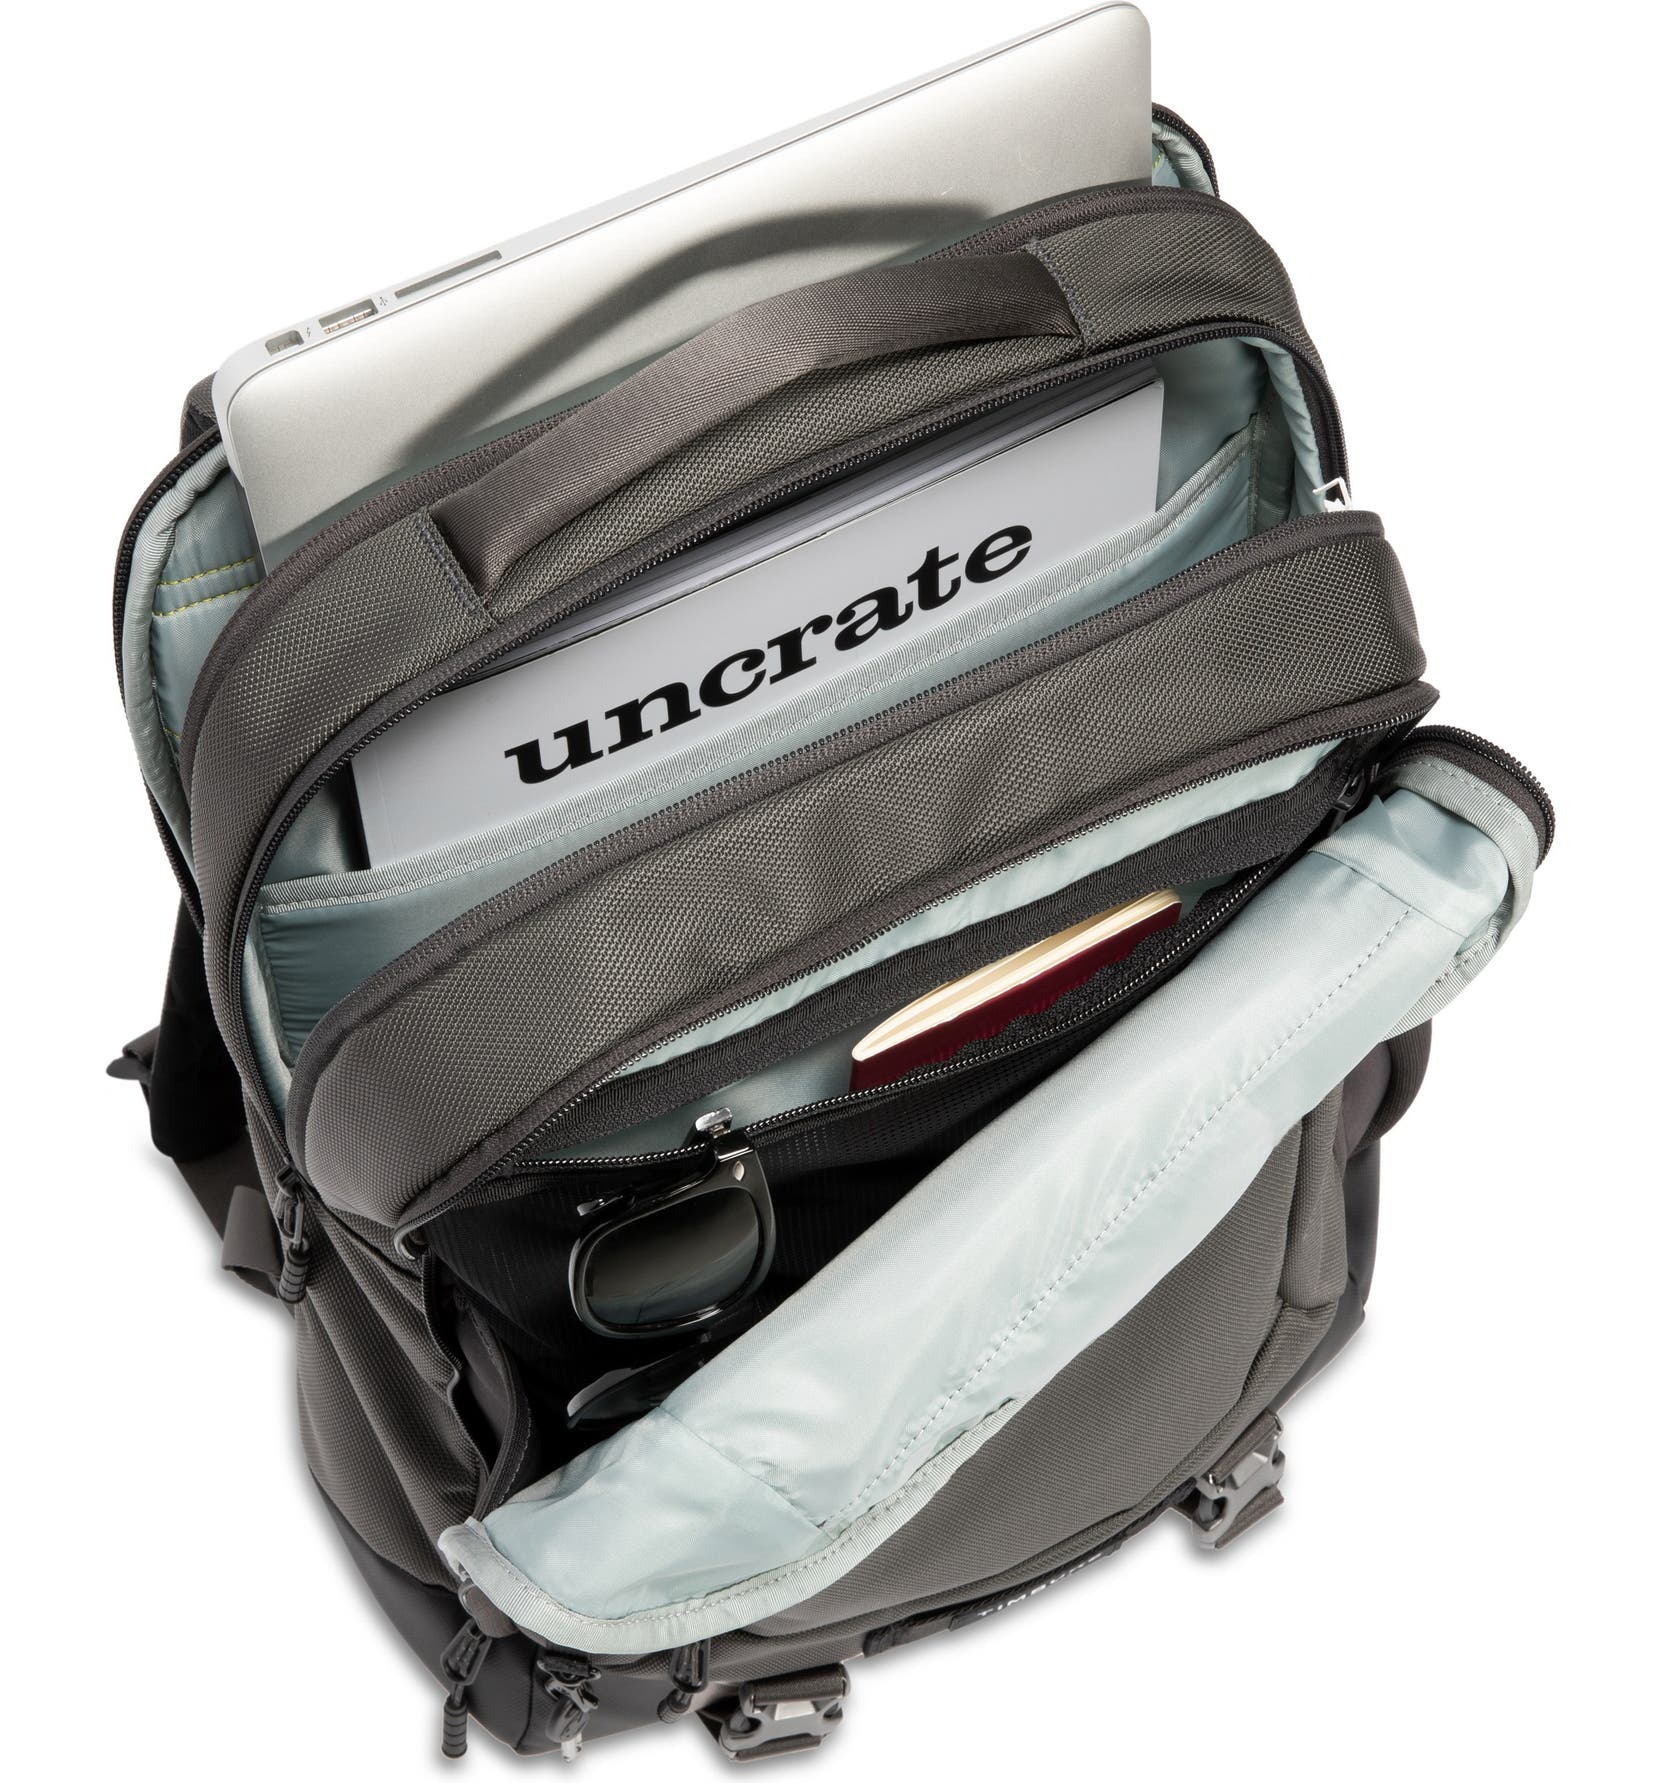 Timbuk2 Authority Deluxe Backpack | Nordstrom